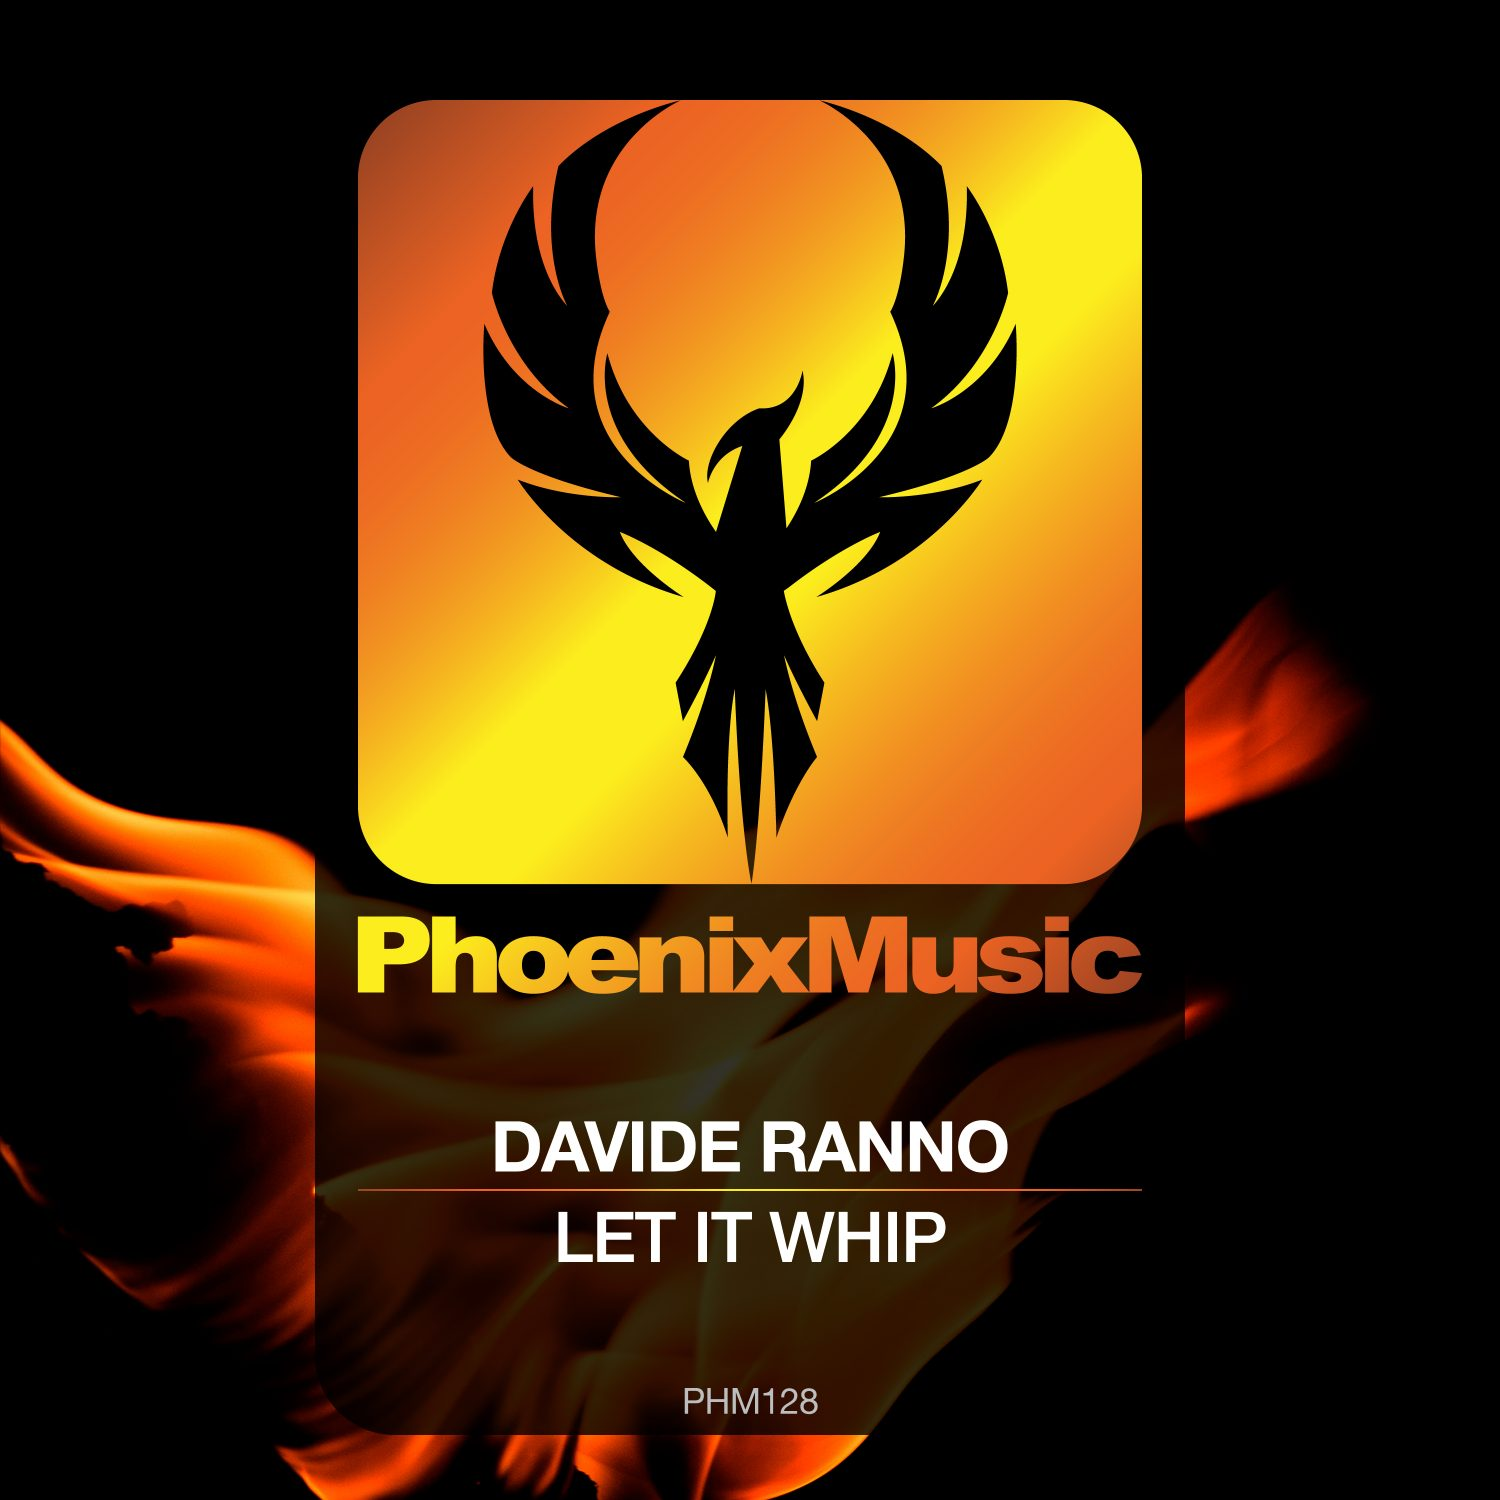 PHM128 - Davide Ranno - Let It Whip